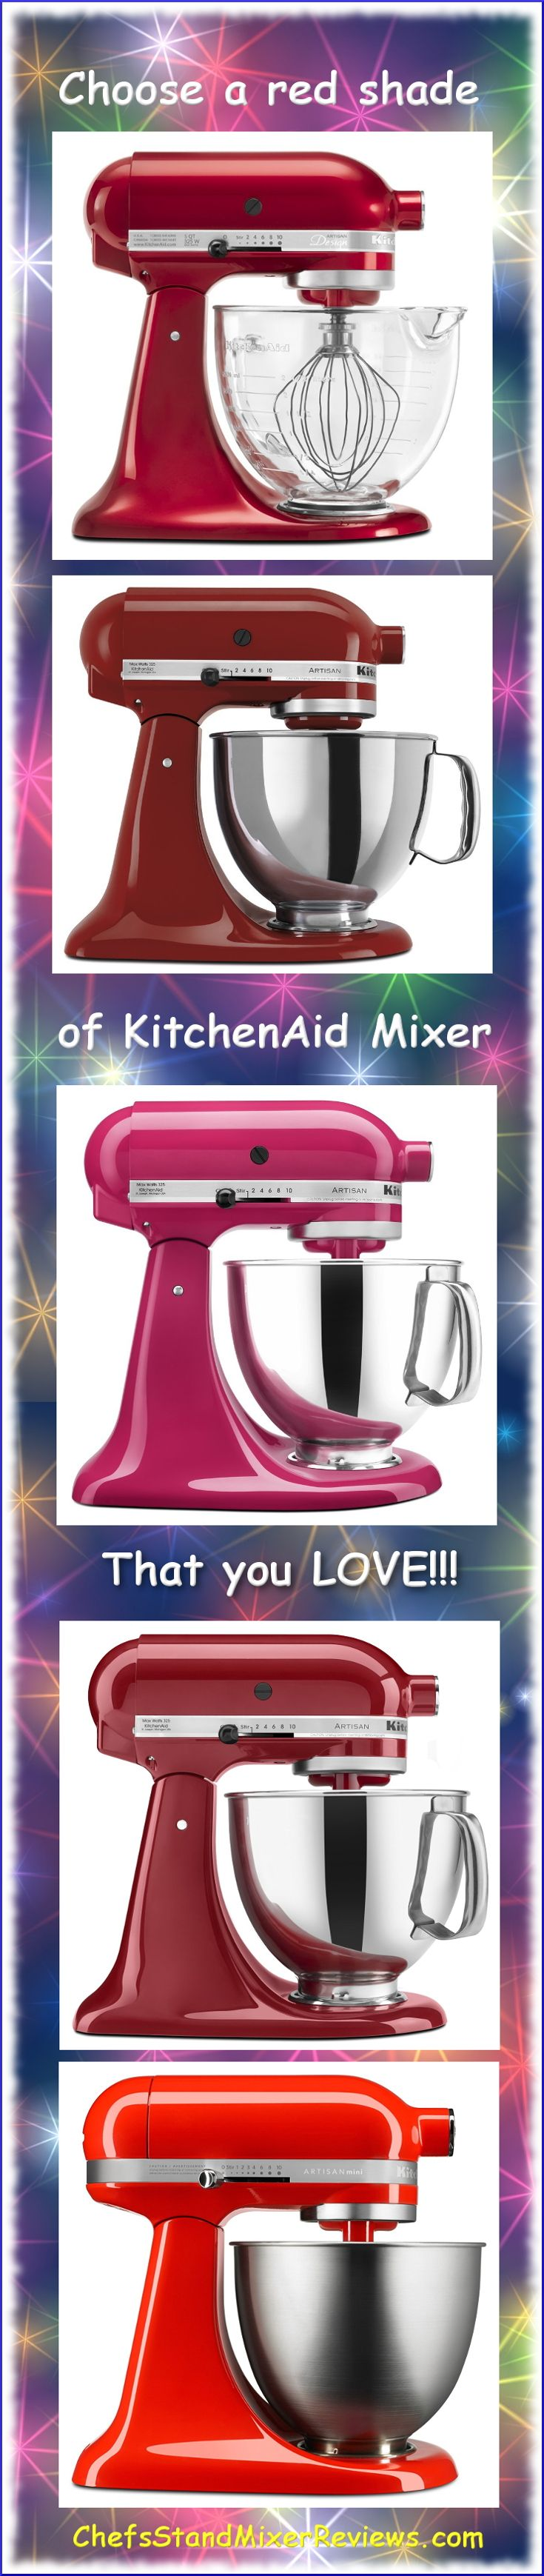 Kitchenaid stand mixers colors - 25 Best Ideas About Kitchenaid Mixer Colors On Pinterest Mixers Kitchenaid And Kitchenaid Stand Mixer